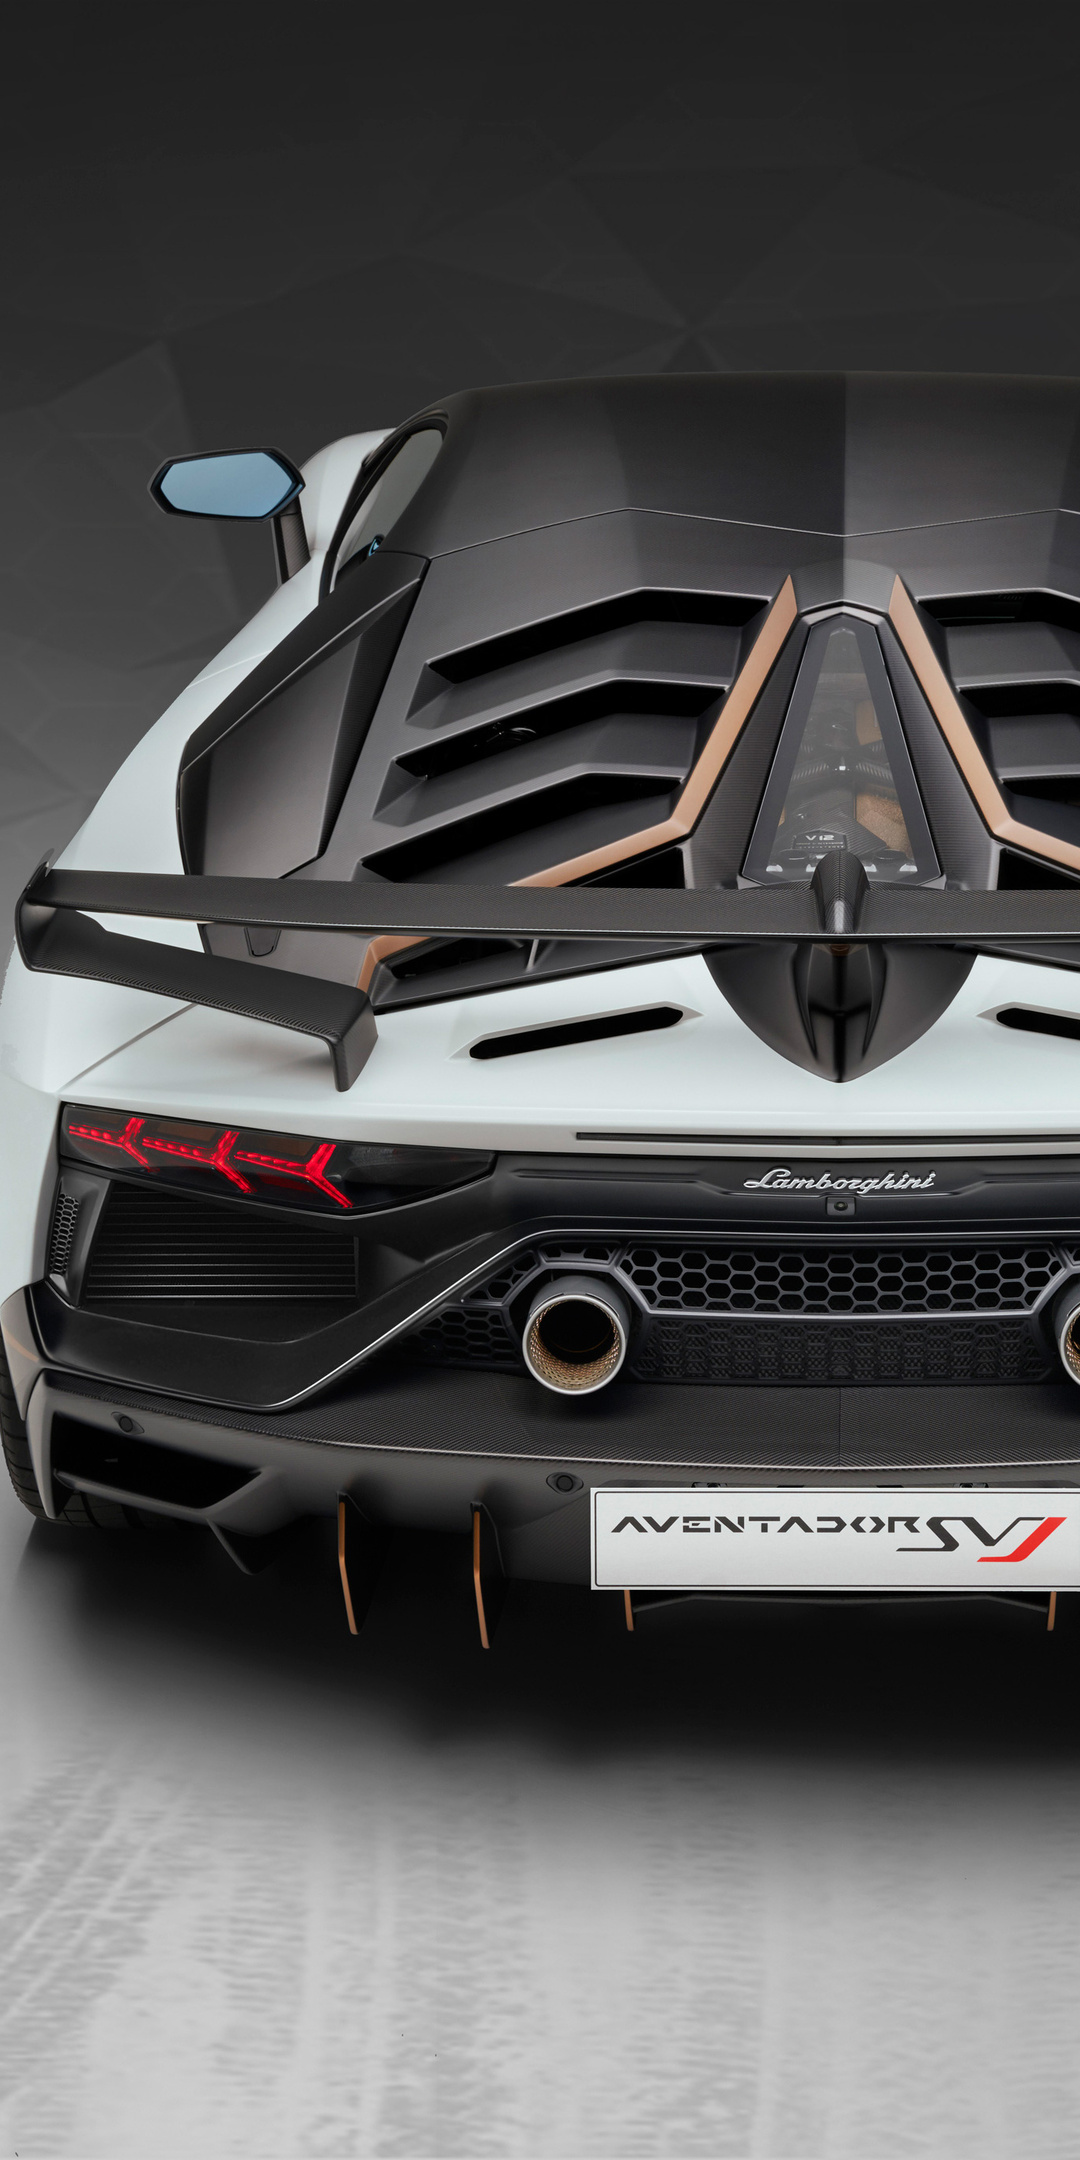 Lambo Aventador Svj 63 Car Review And Gallery